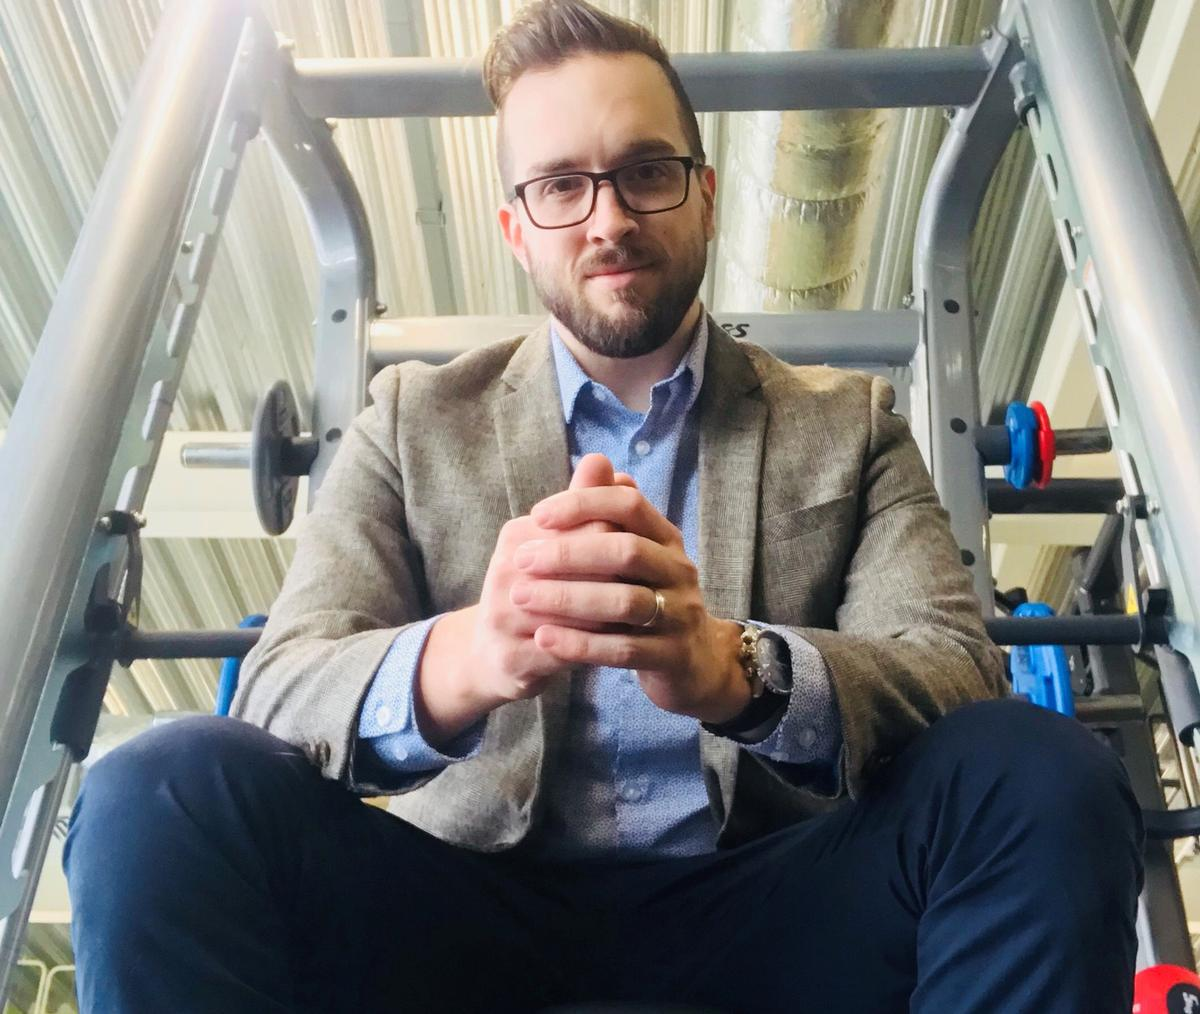 During his 14-year fitness career, Pittman has had stints at a number of operators –including Virgin Active, Everyone Active, Nuffield Health and David Lloyd Leisure / Serco Leisure